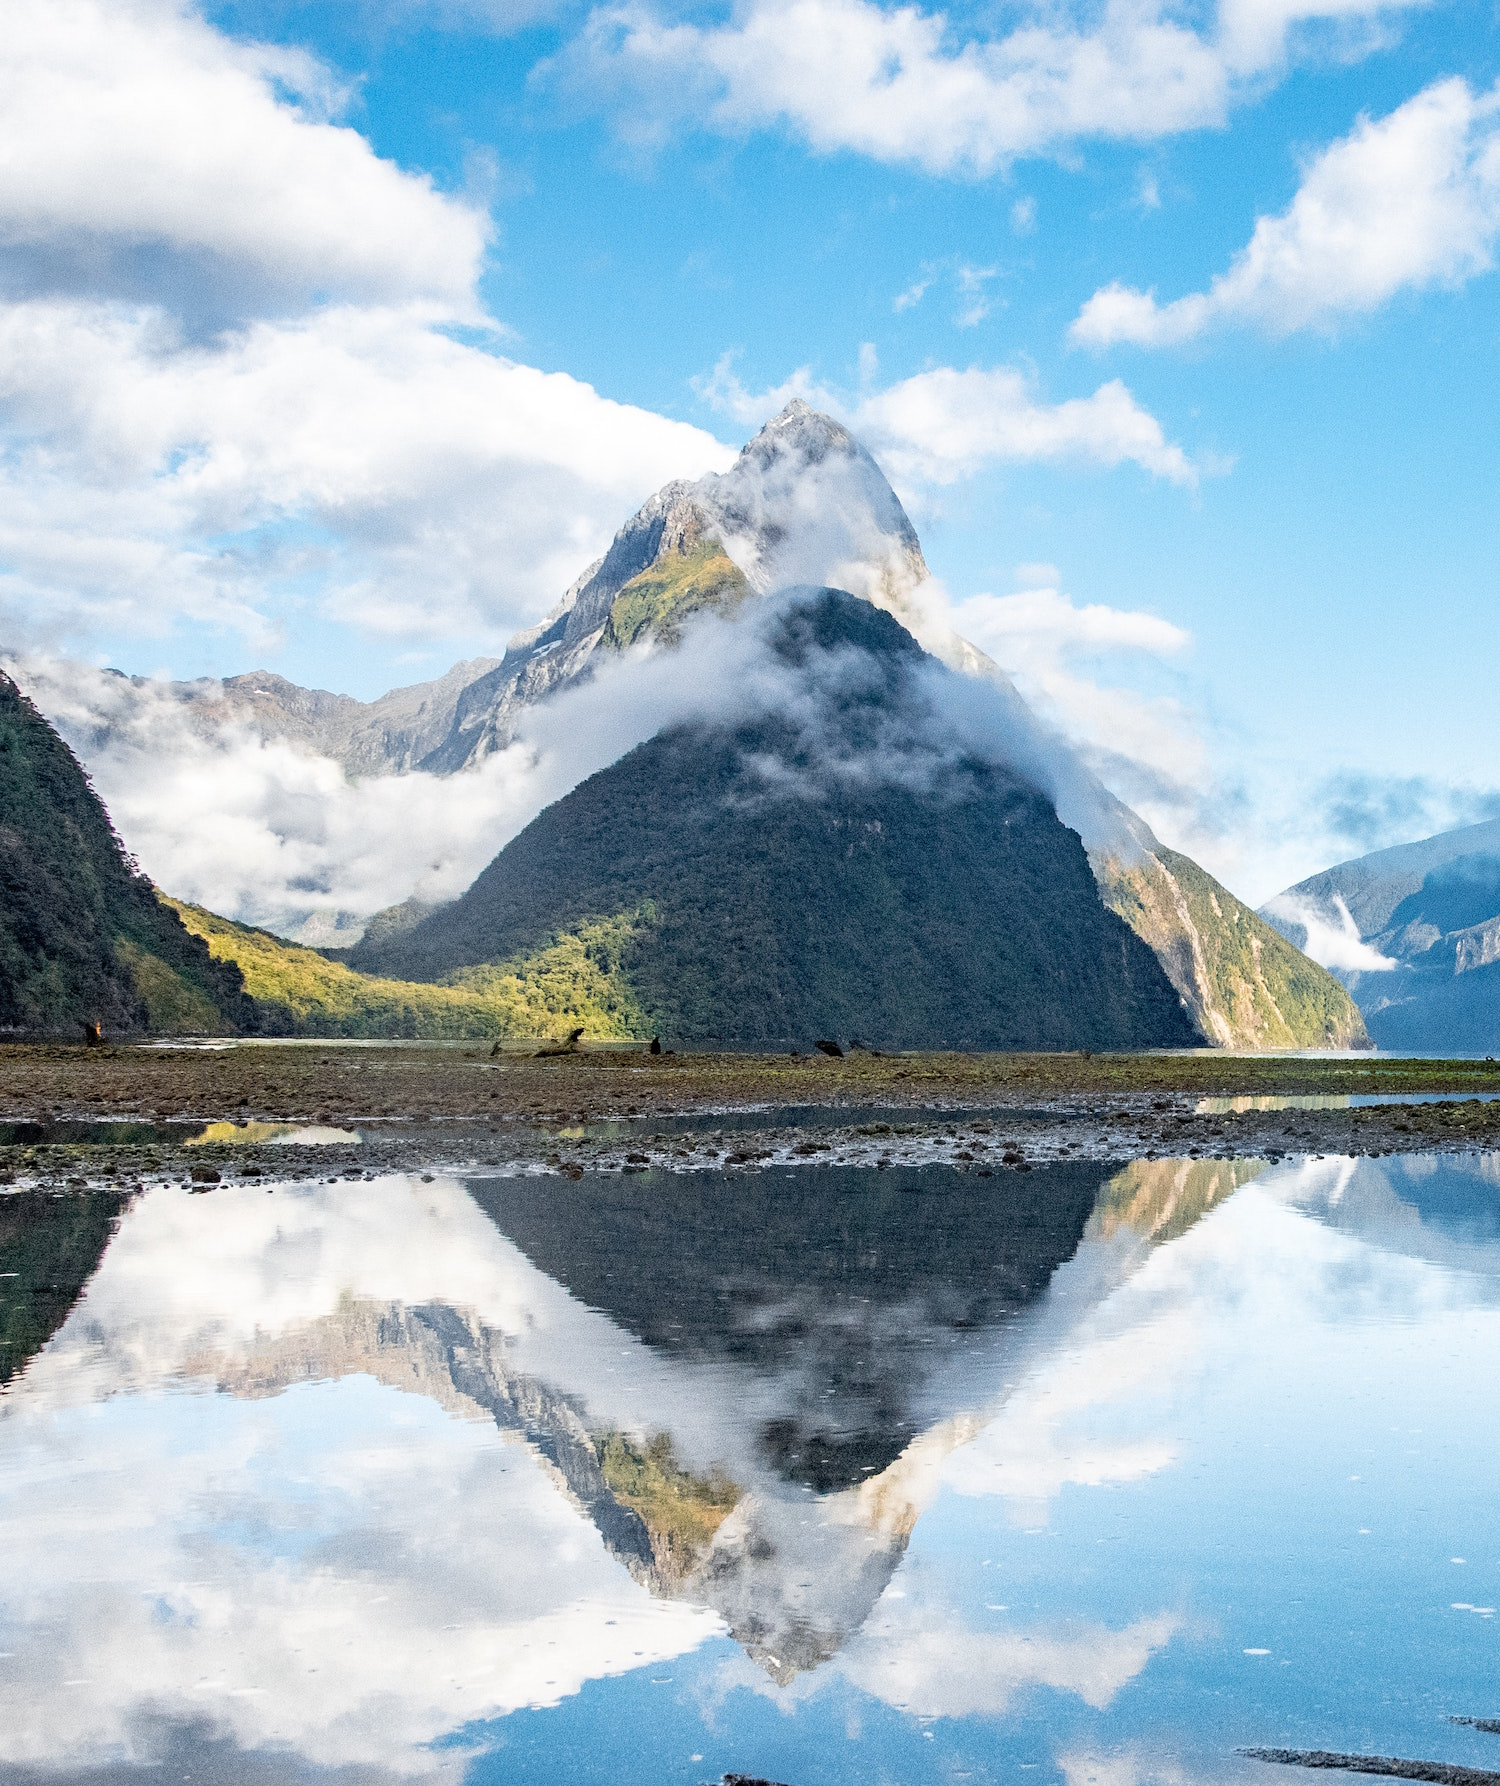 Perfect reflection of clouds and mountains and on a lake at Milford Sound.